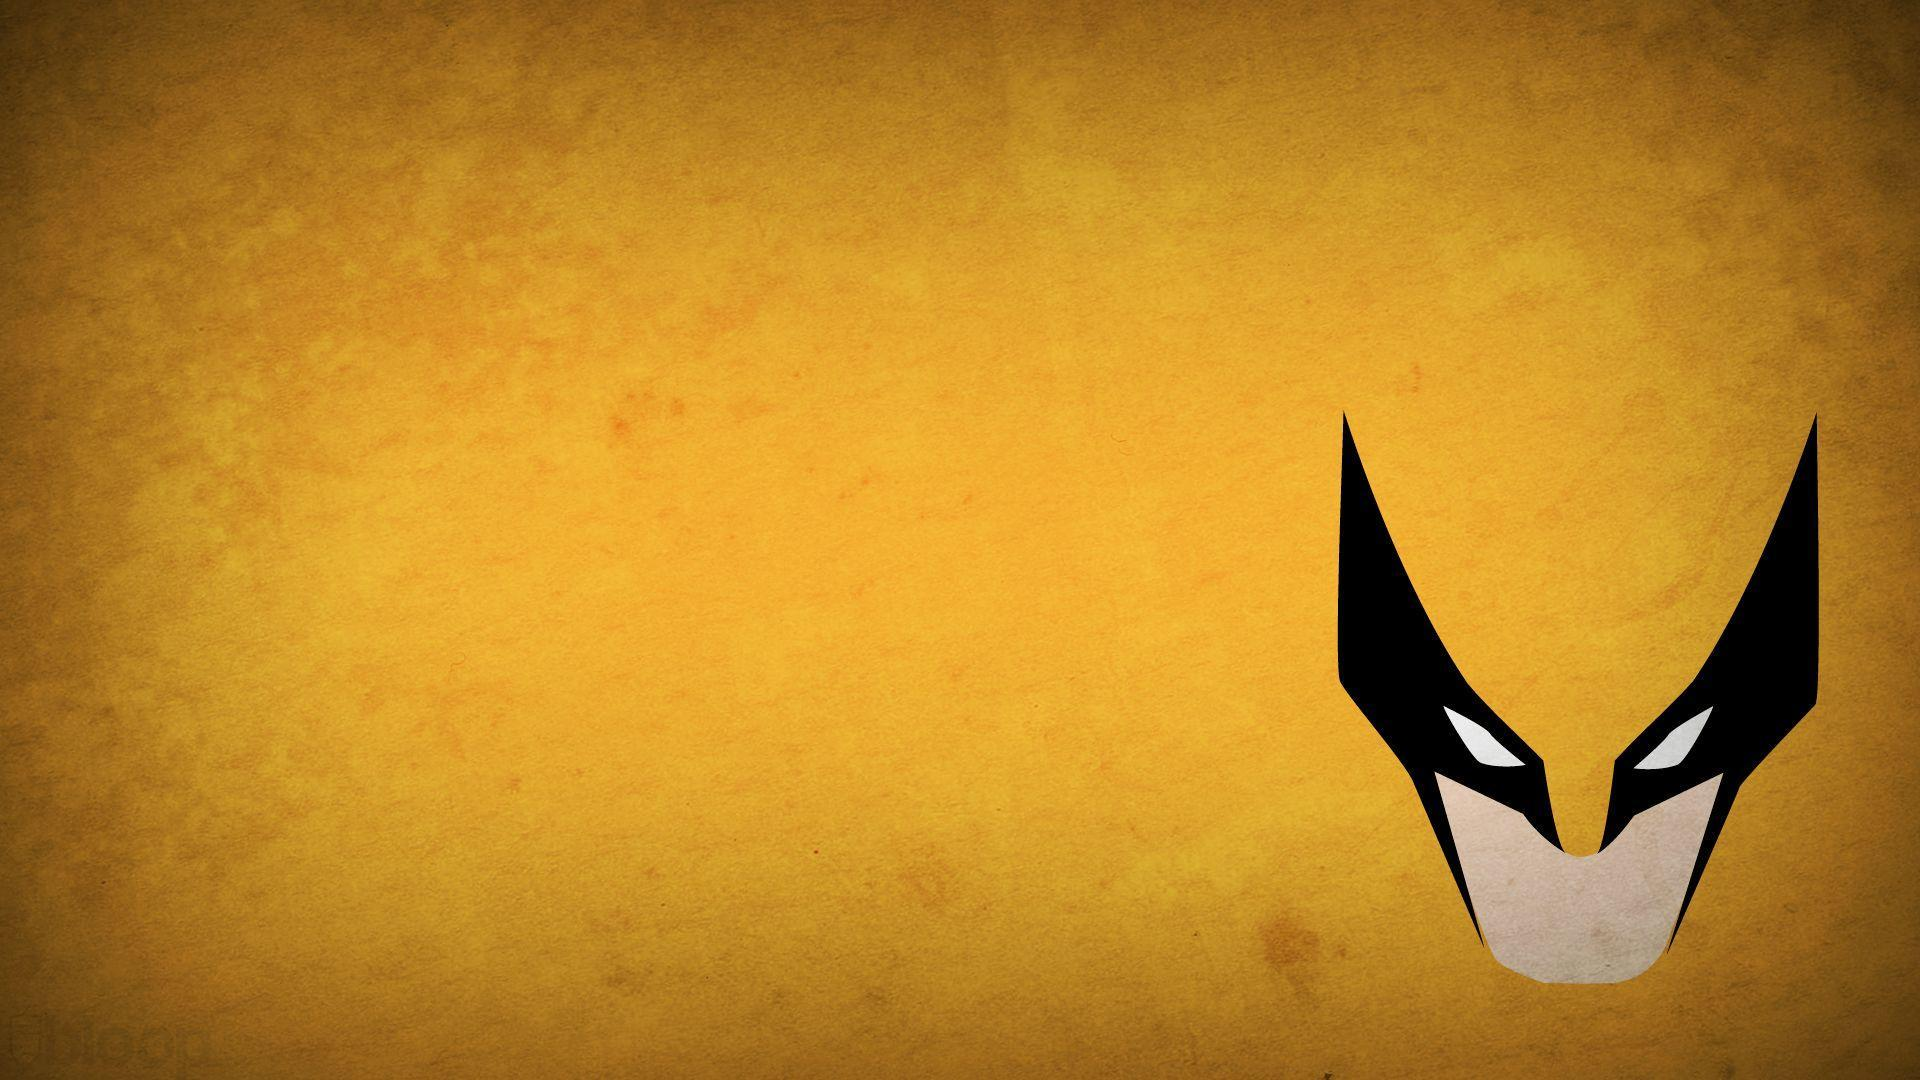 1920x1080 Wolverine Wallpapers HD